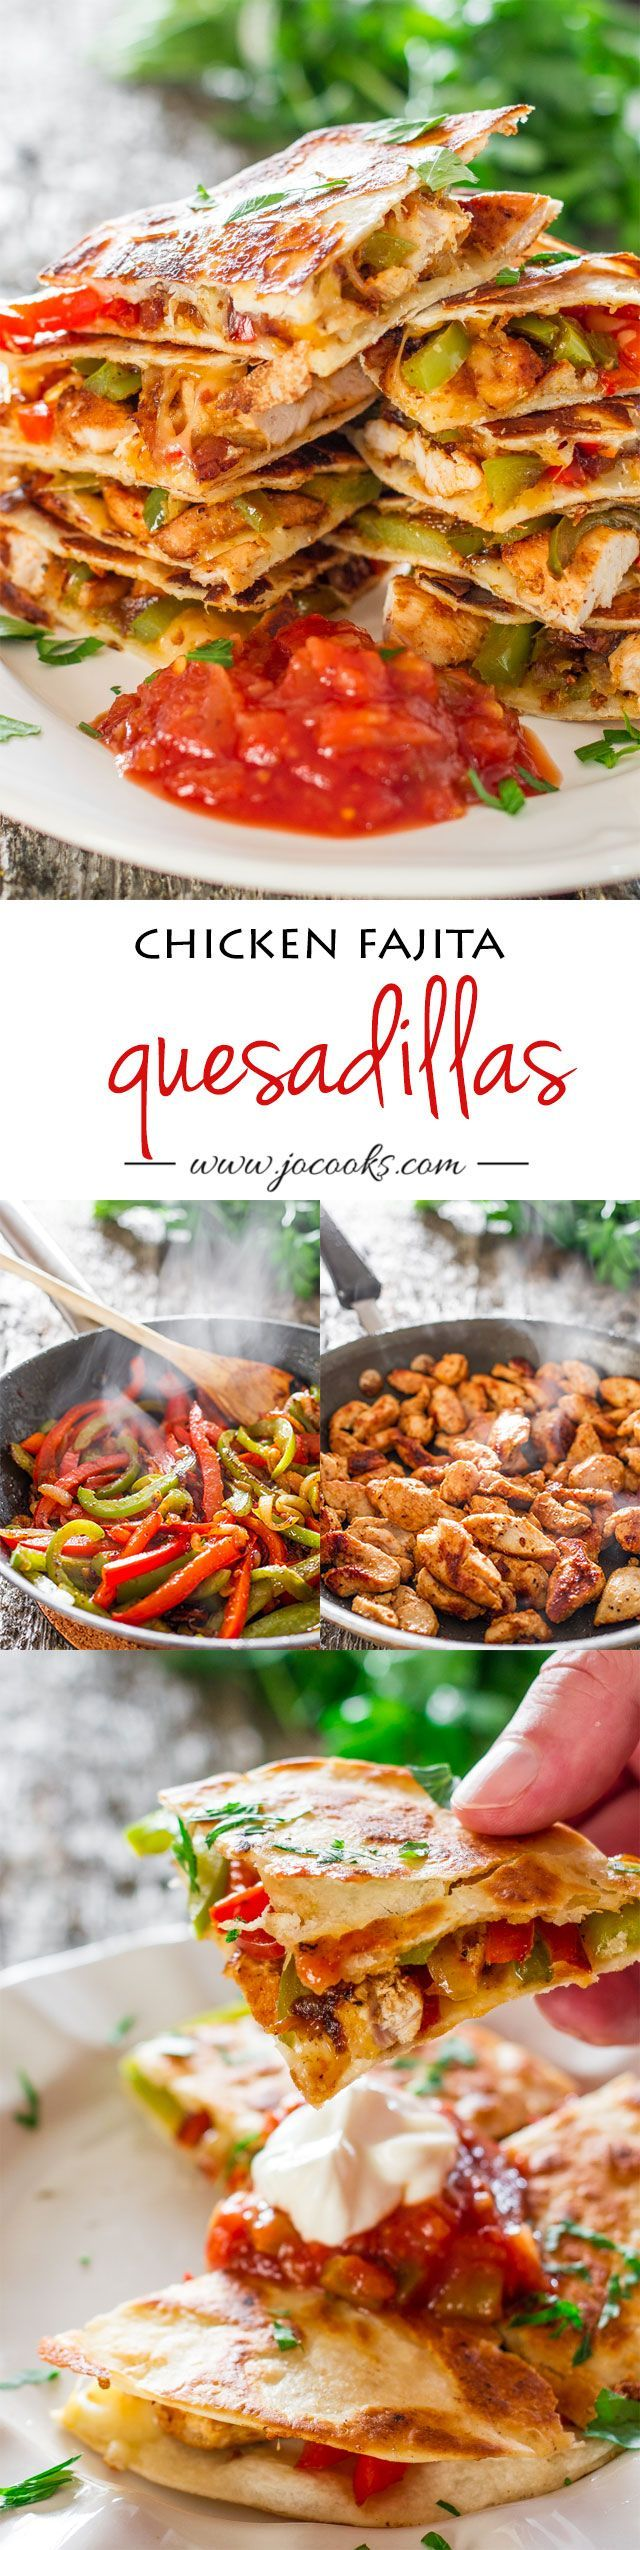 Chicken Fajita Quesadillas - sauteed onions, red and green peppers, perfectly seasoned chicken breast, melted cheese, between two tortillas. Simply yummy.: